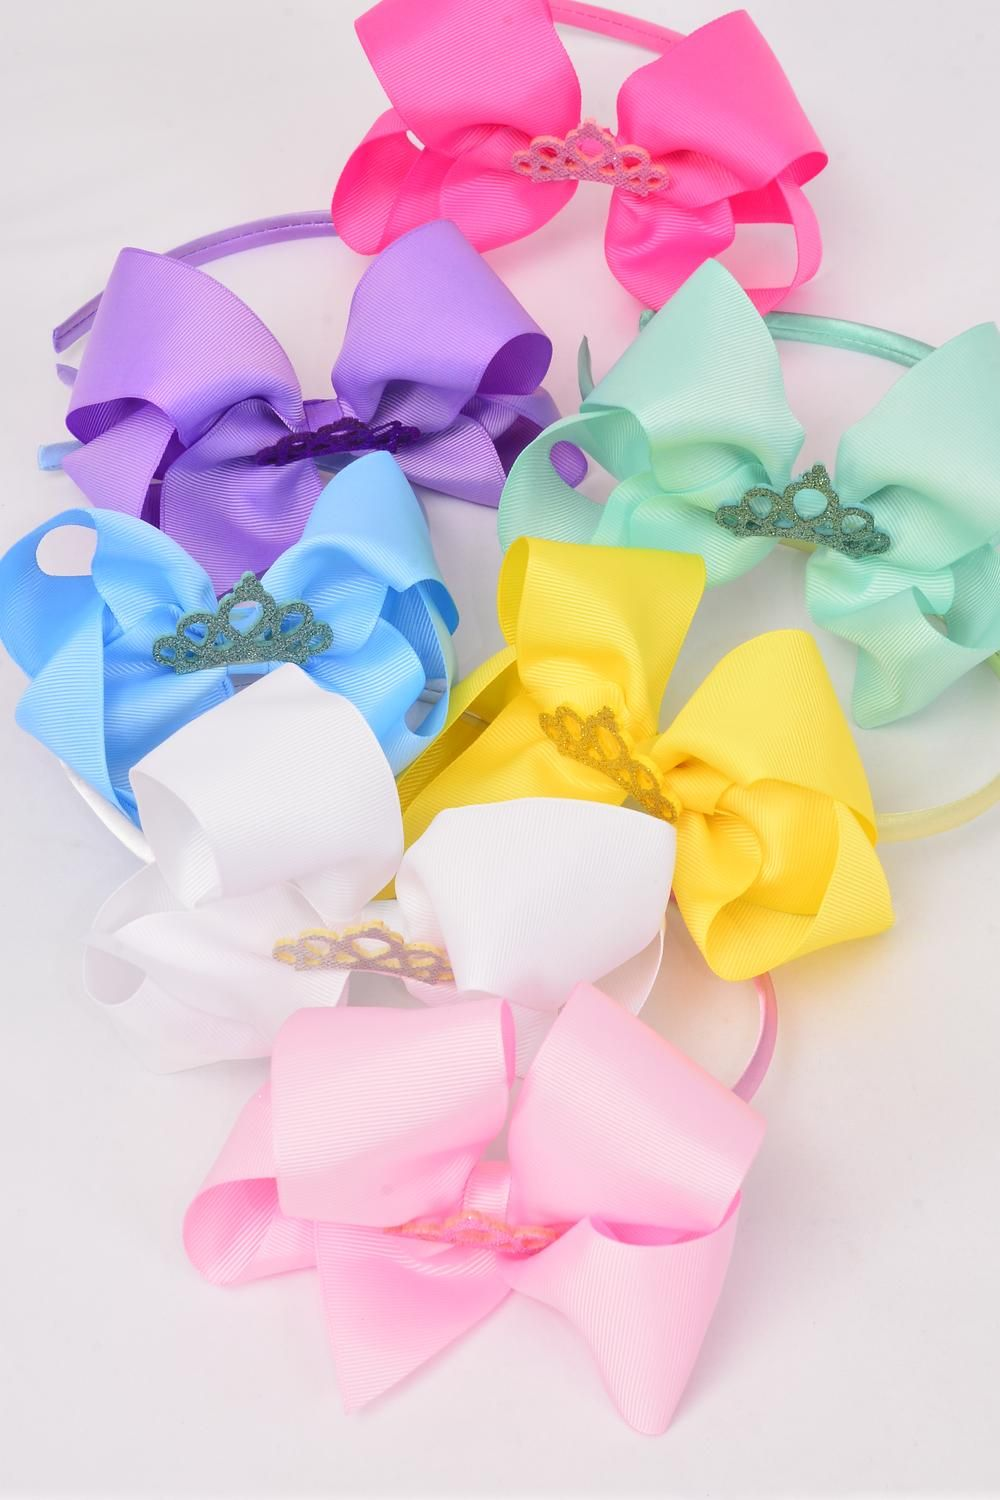 "Headband Horseshoe Tiara Jumbo Tiara Double Layer Grosgrain Bow-tie Pastel/DZ **Pastel** Bow Size-6""x 5"" Wide,2 White,2 Pink,2 Yellow,2 Lavender,2 Blue,1 Hot Pink,1 Mint Green,7 Color Mix,Display Card & UPC Code,Clear Box"